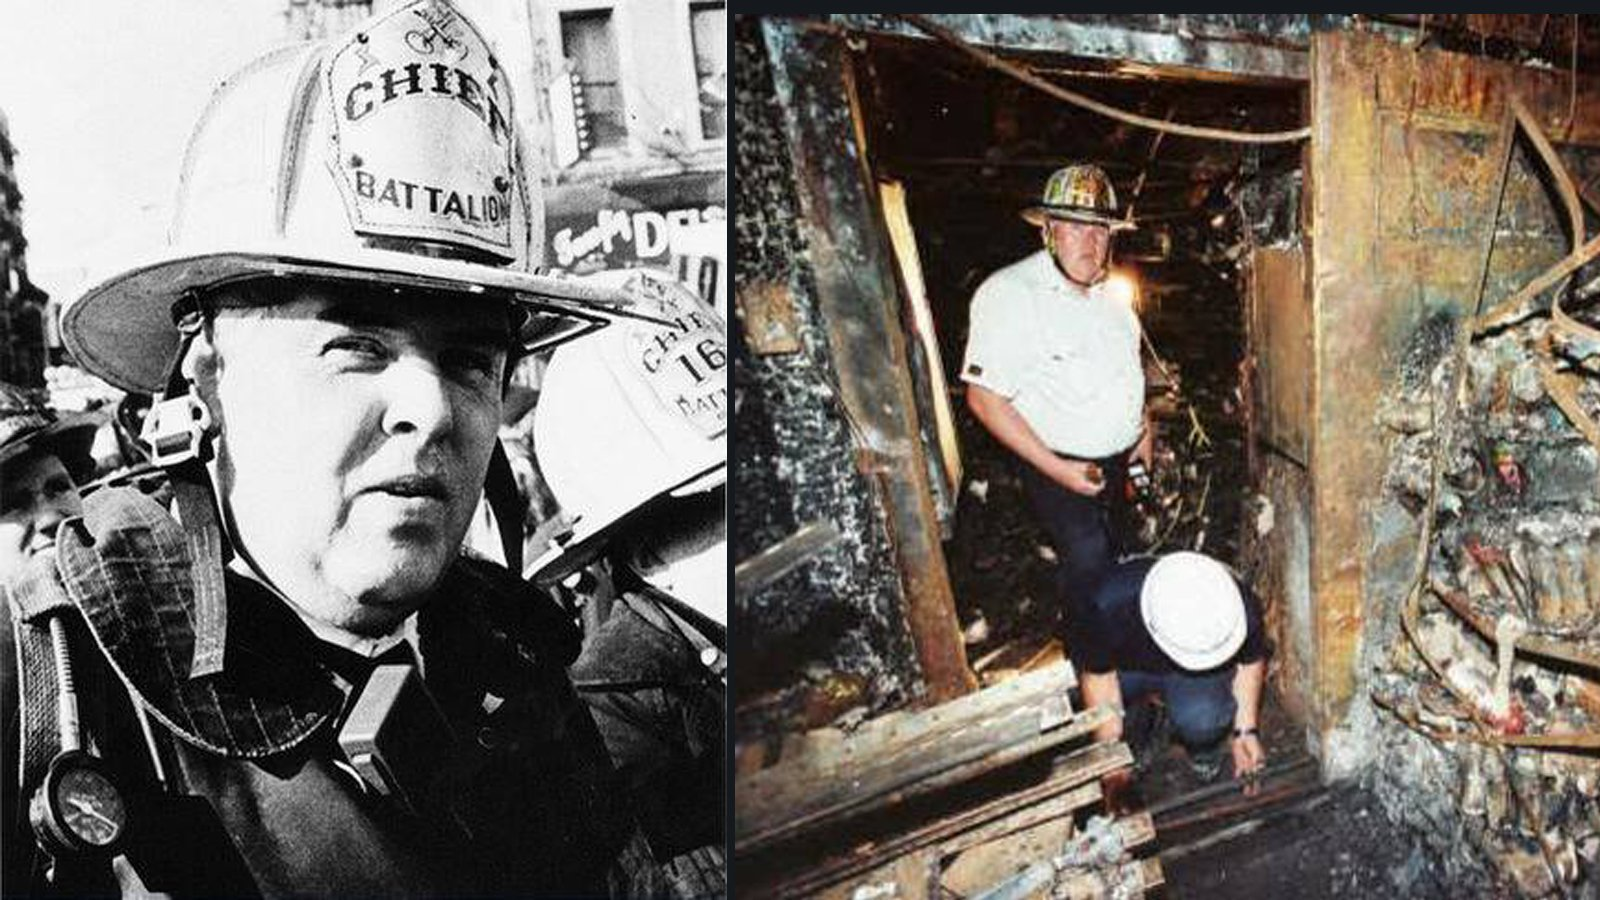 Larry Stack was a man who, by all accounts, was kind, selfless, and brave. Prior to his 33 years of service with the FDNY, he served in the United States Navy for six years, including a tour of duty in Vietnam.